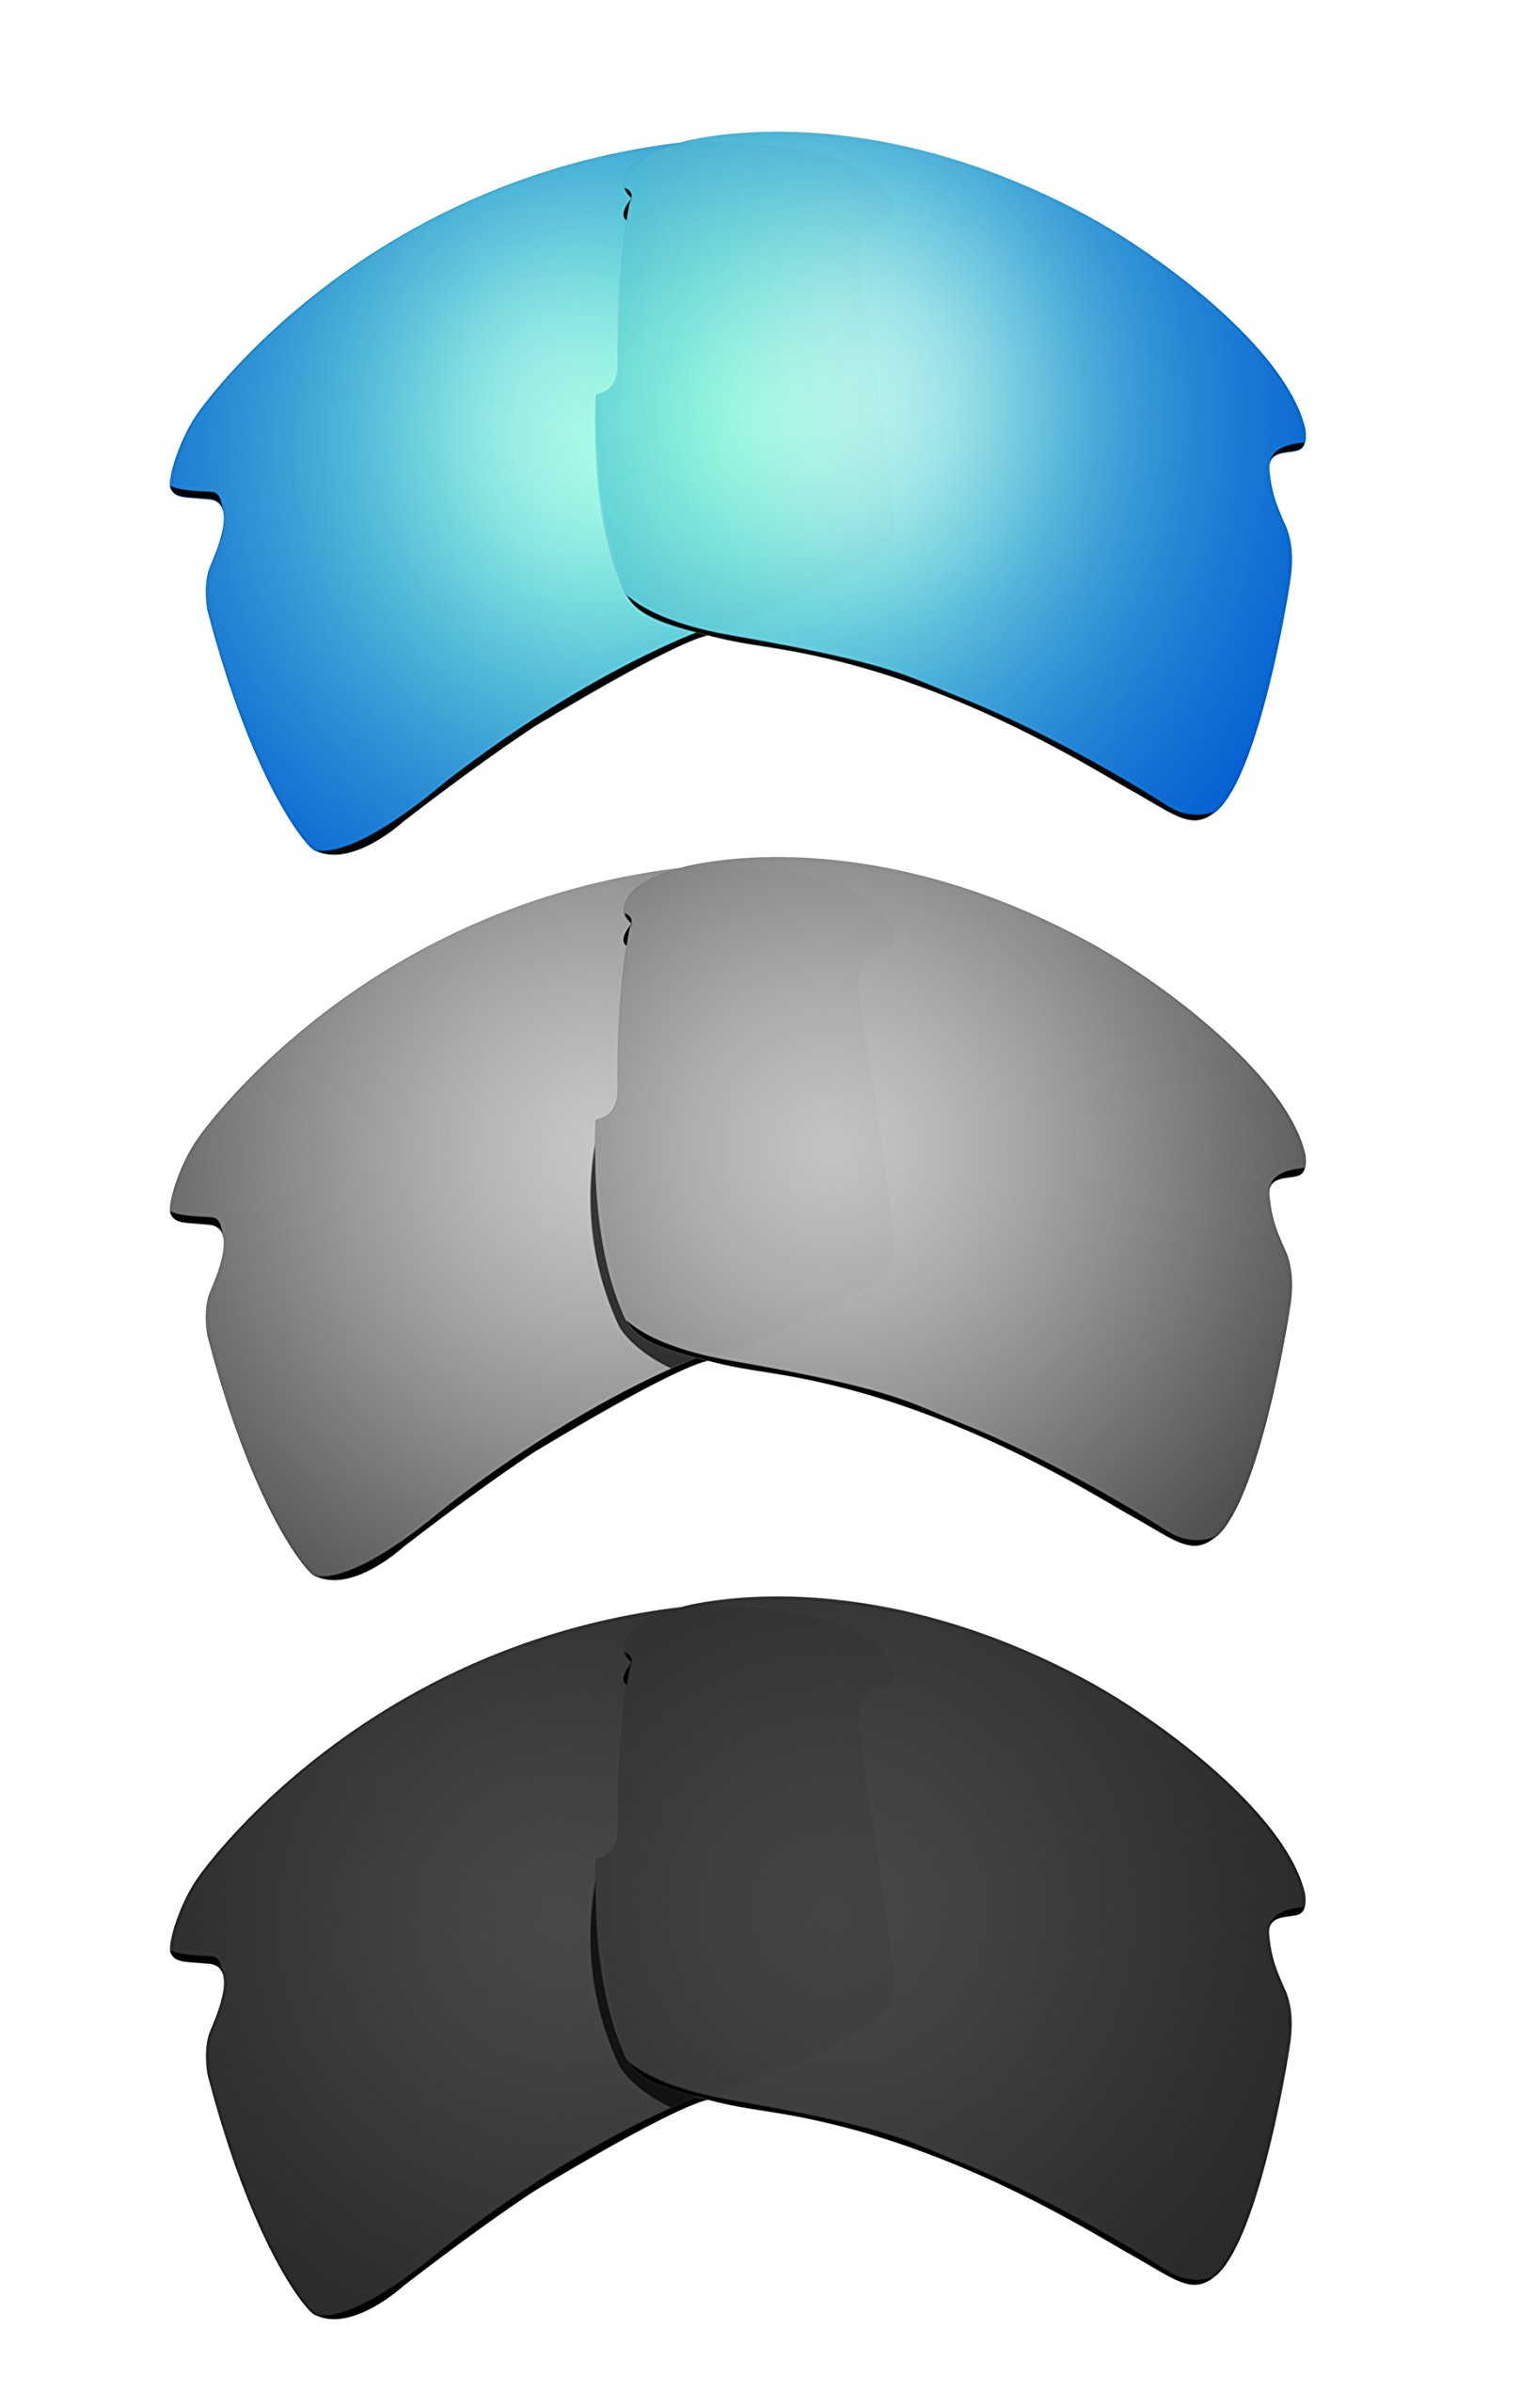 Littlebird4 3 Pairs 1.5mm Polarized Replacement Lenses for Oakley Flak 2.0 XL Sunglasses - Multiple Options (Black+Silver+Ice Blue)